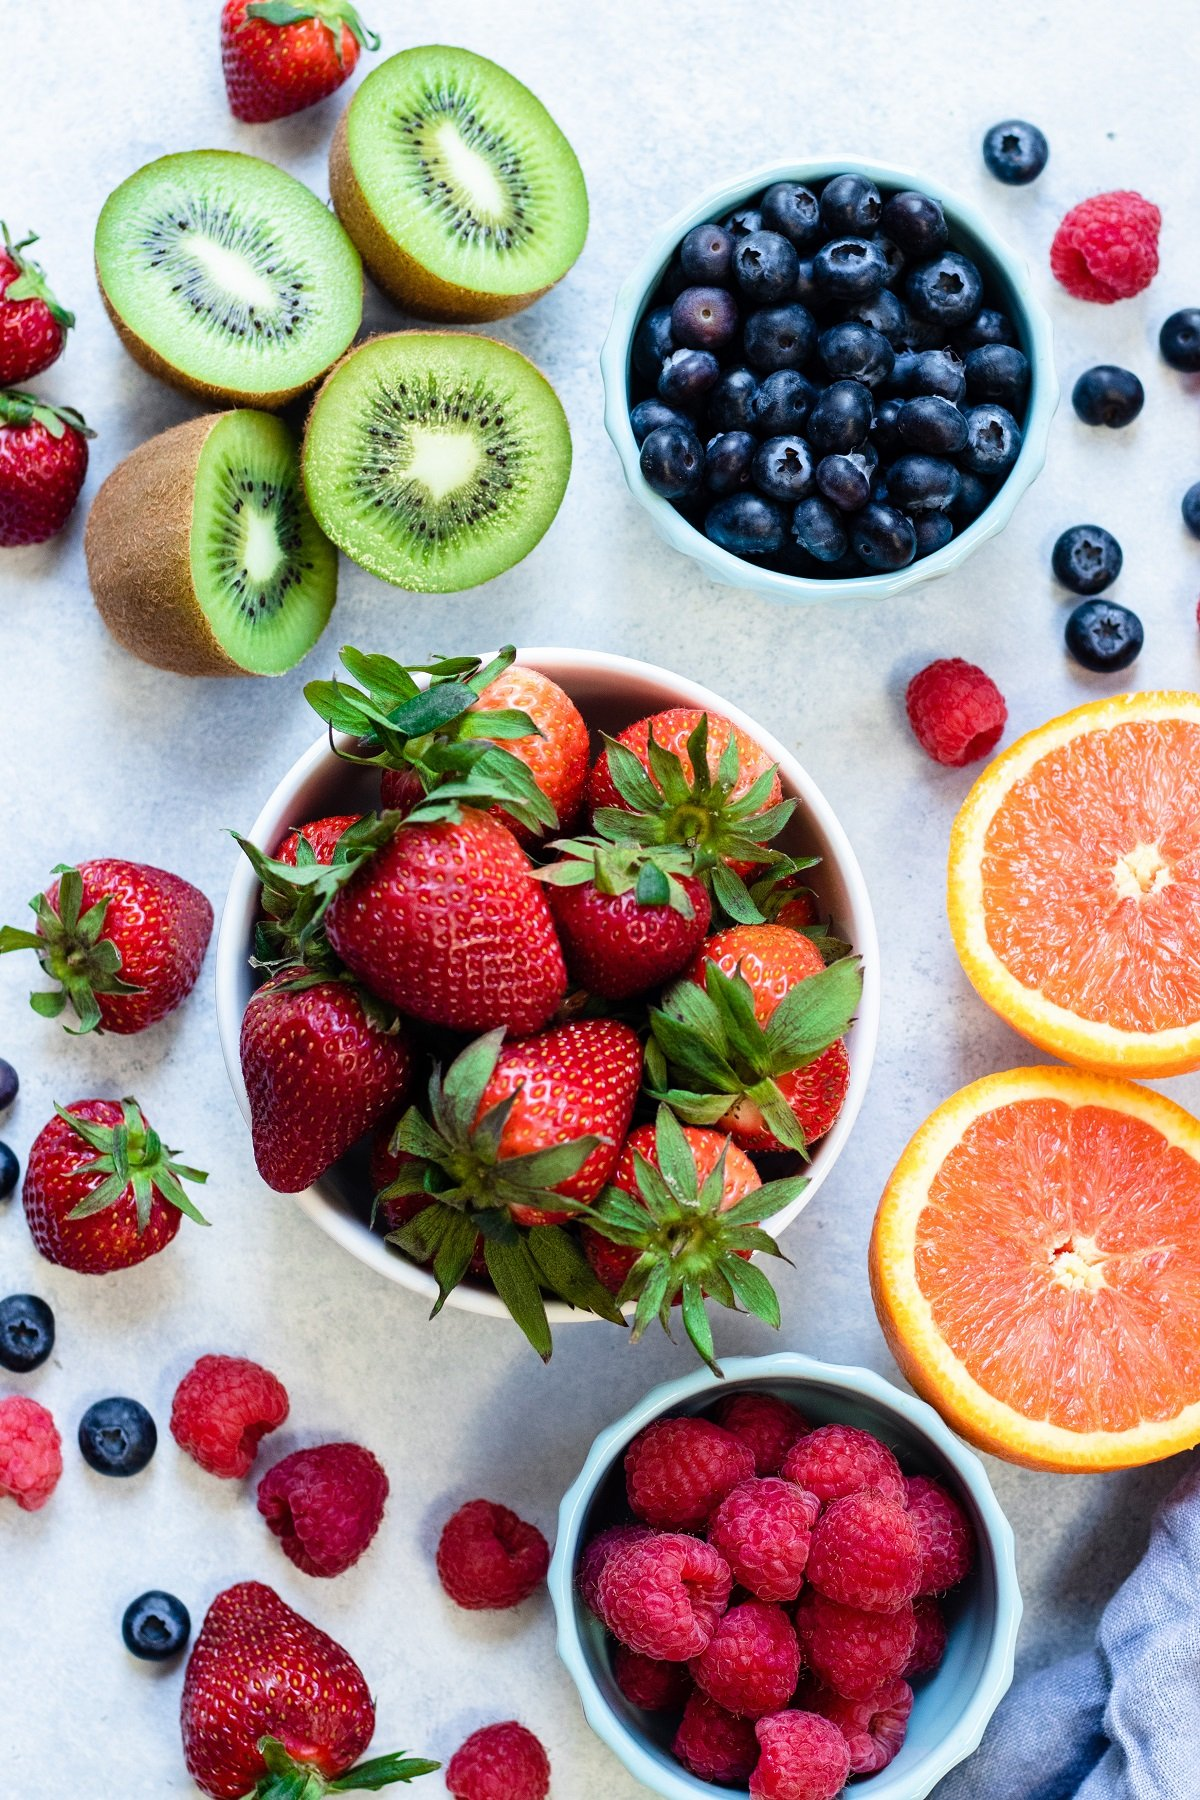 fruit used to decorate flan in bowls on off-white surface - strawberries, raspberries, blueberries, sliced oranges and kiwis